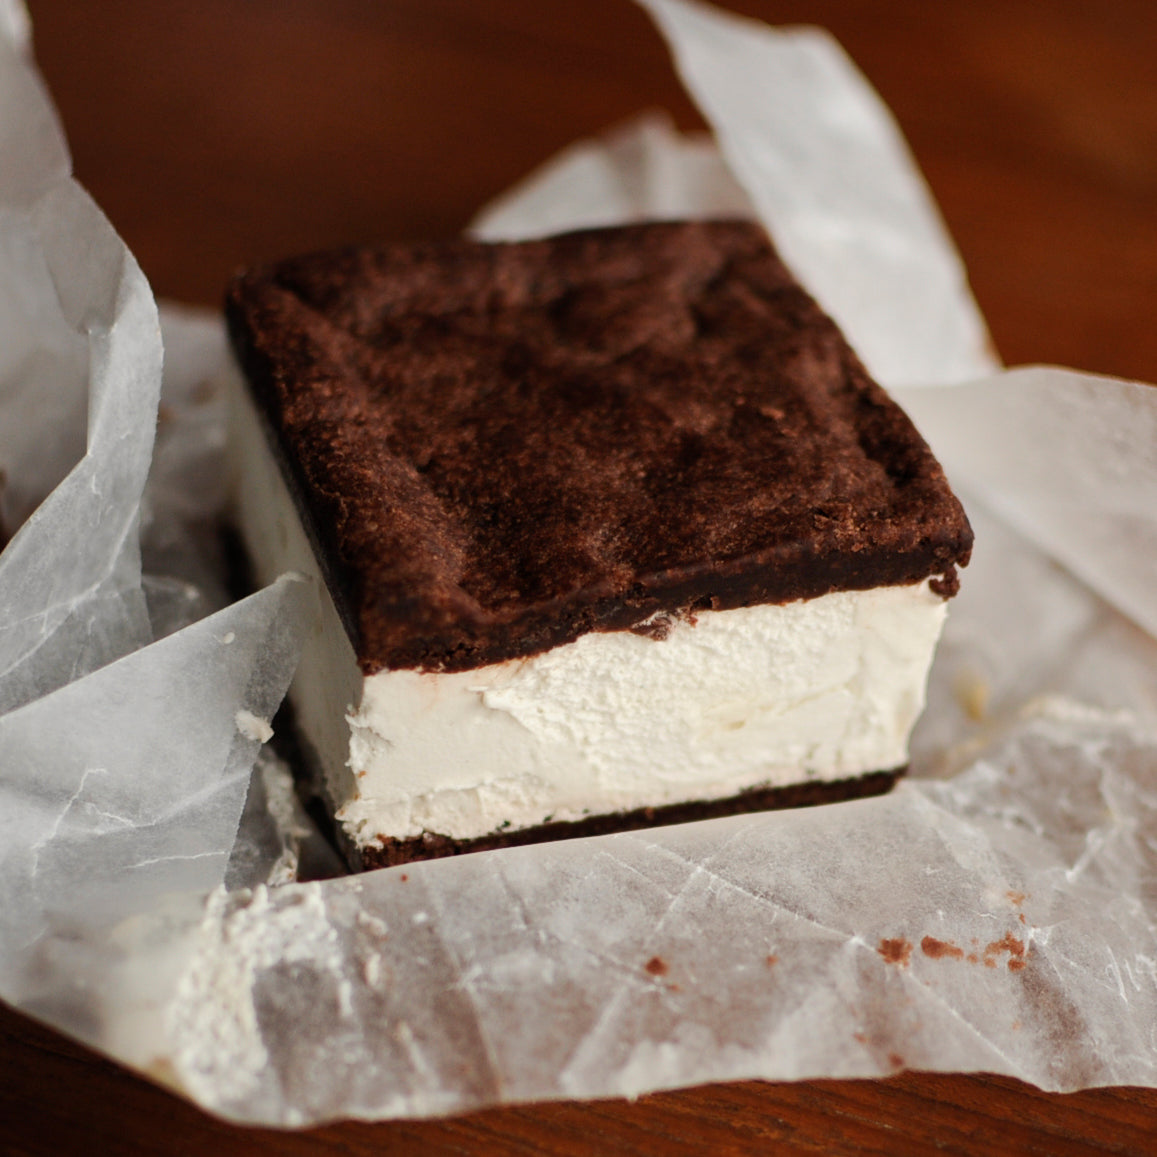 Ice Cream Sandwich(es)